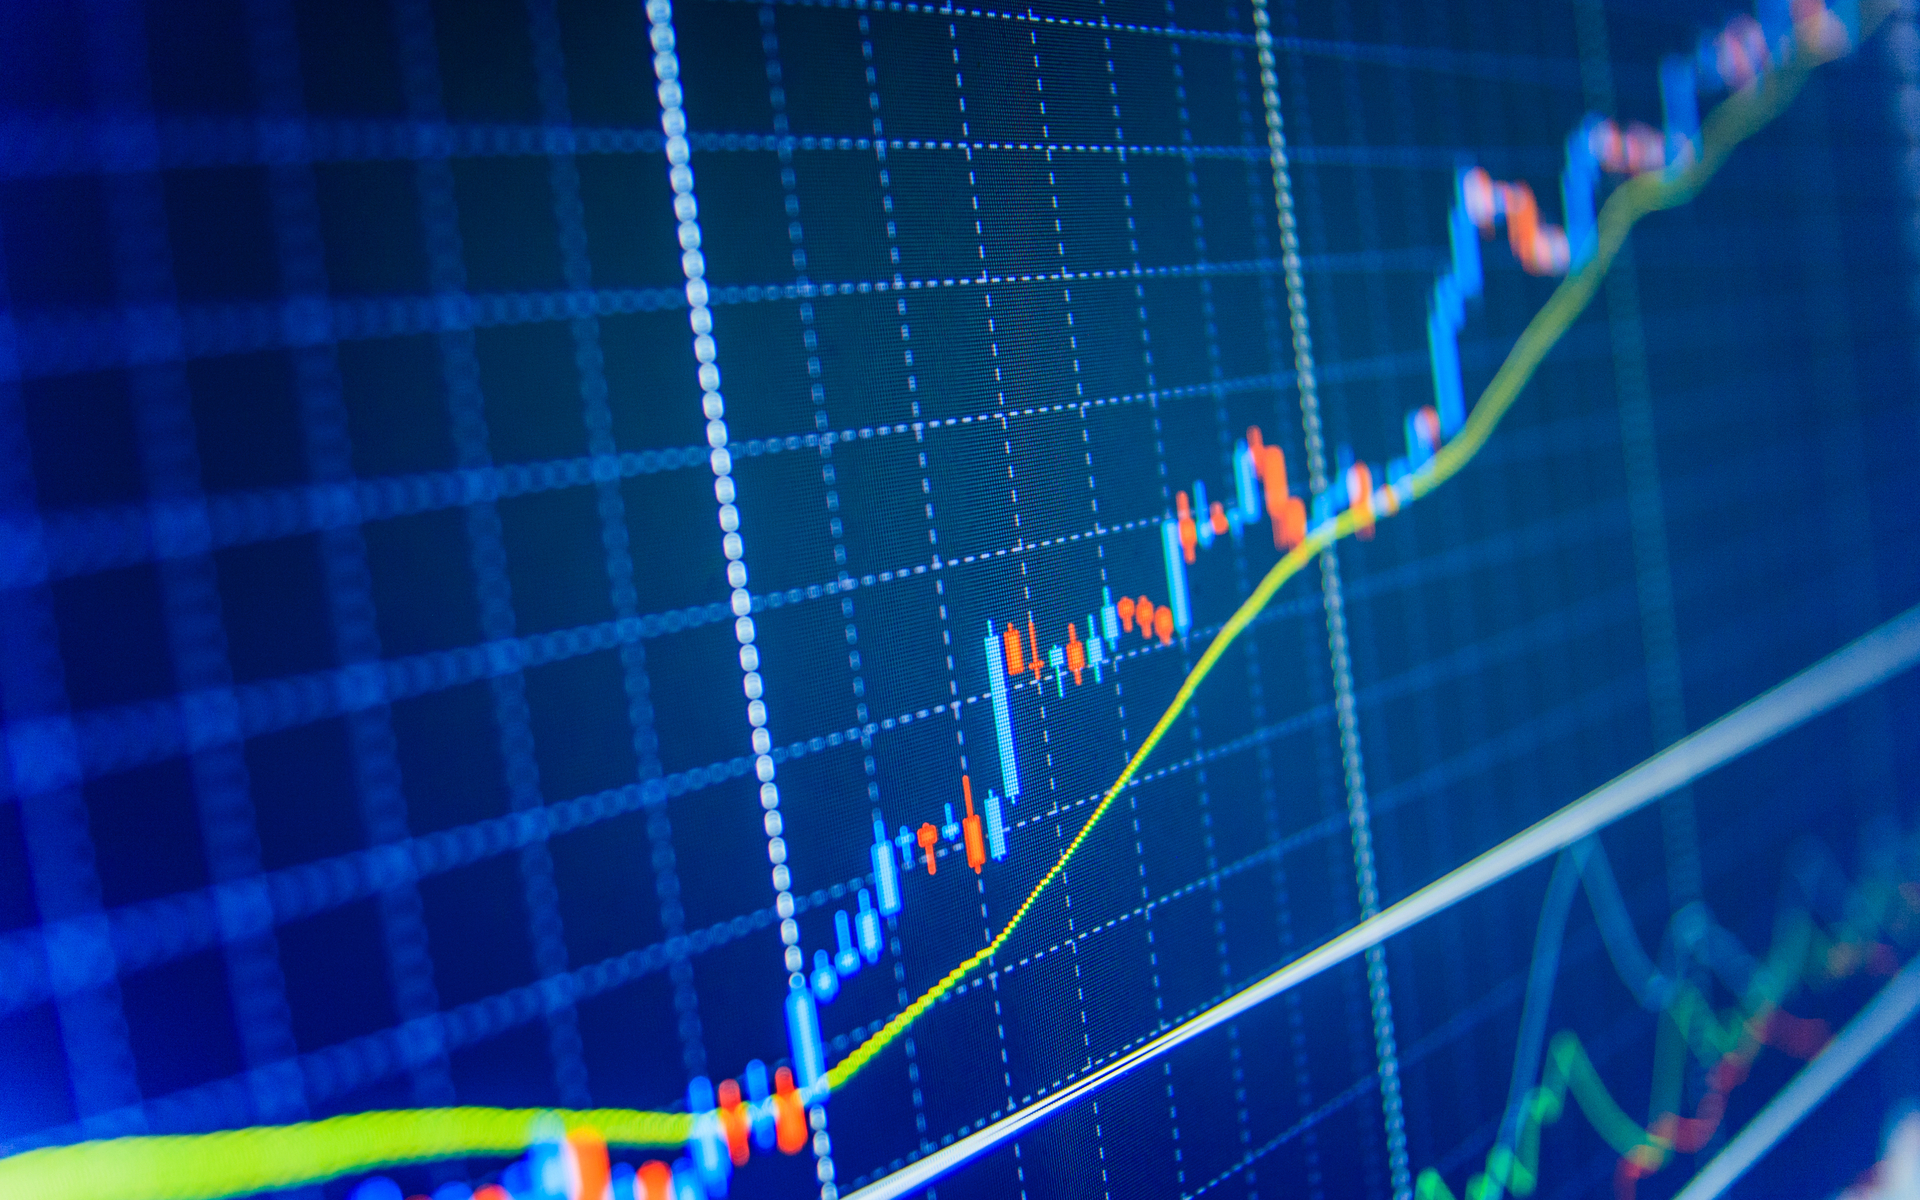 Bitcoin price analysis moving average